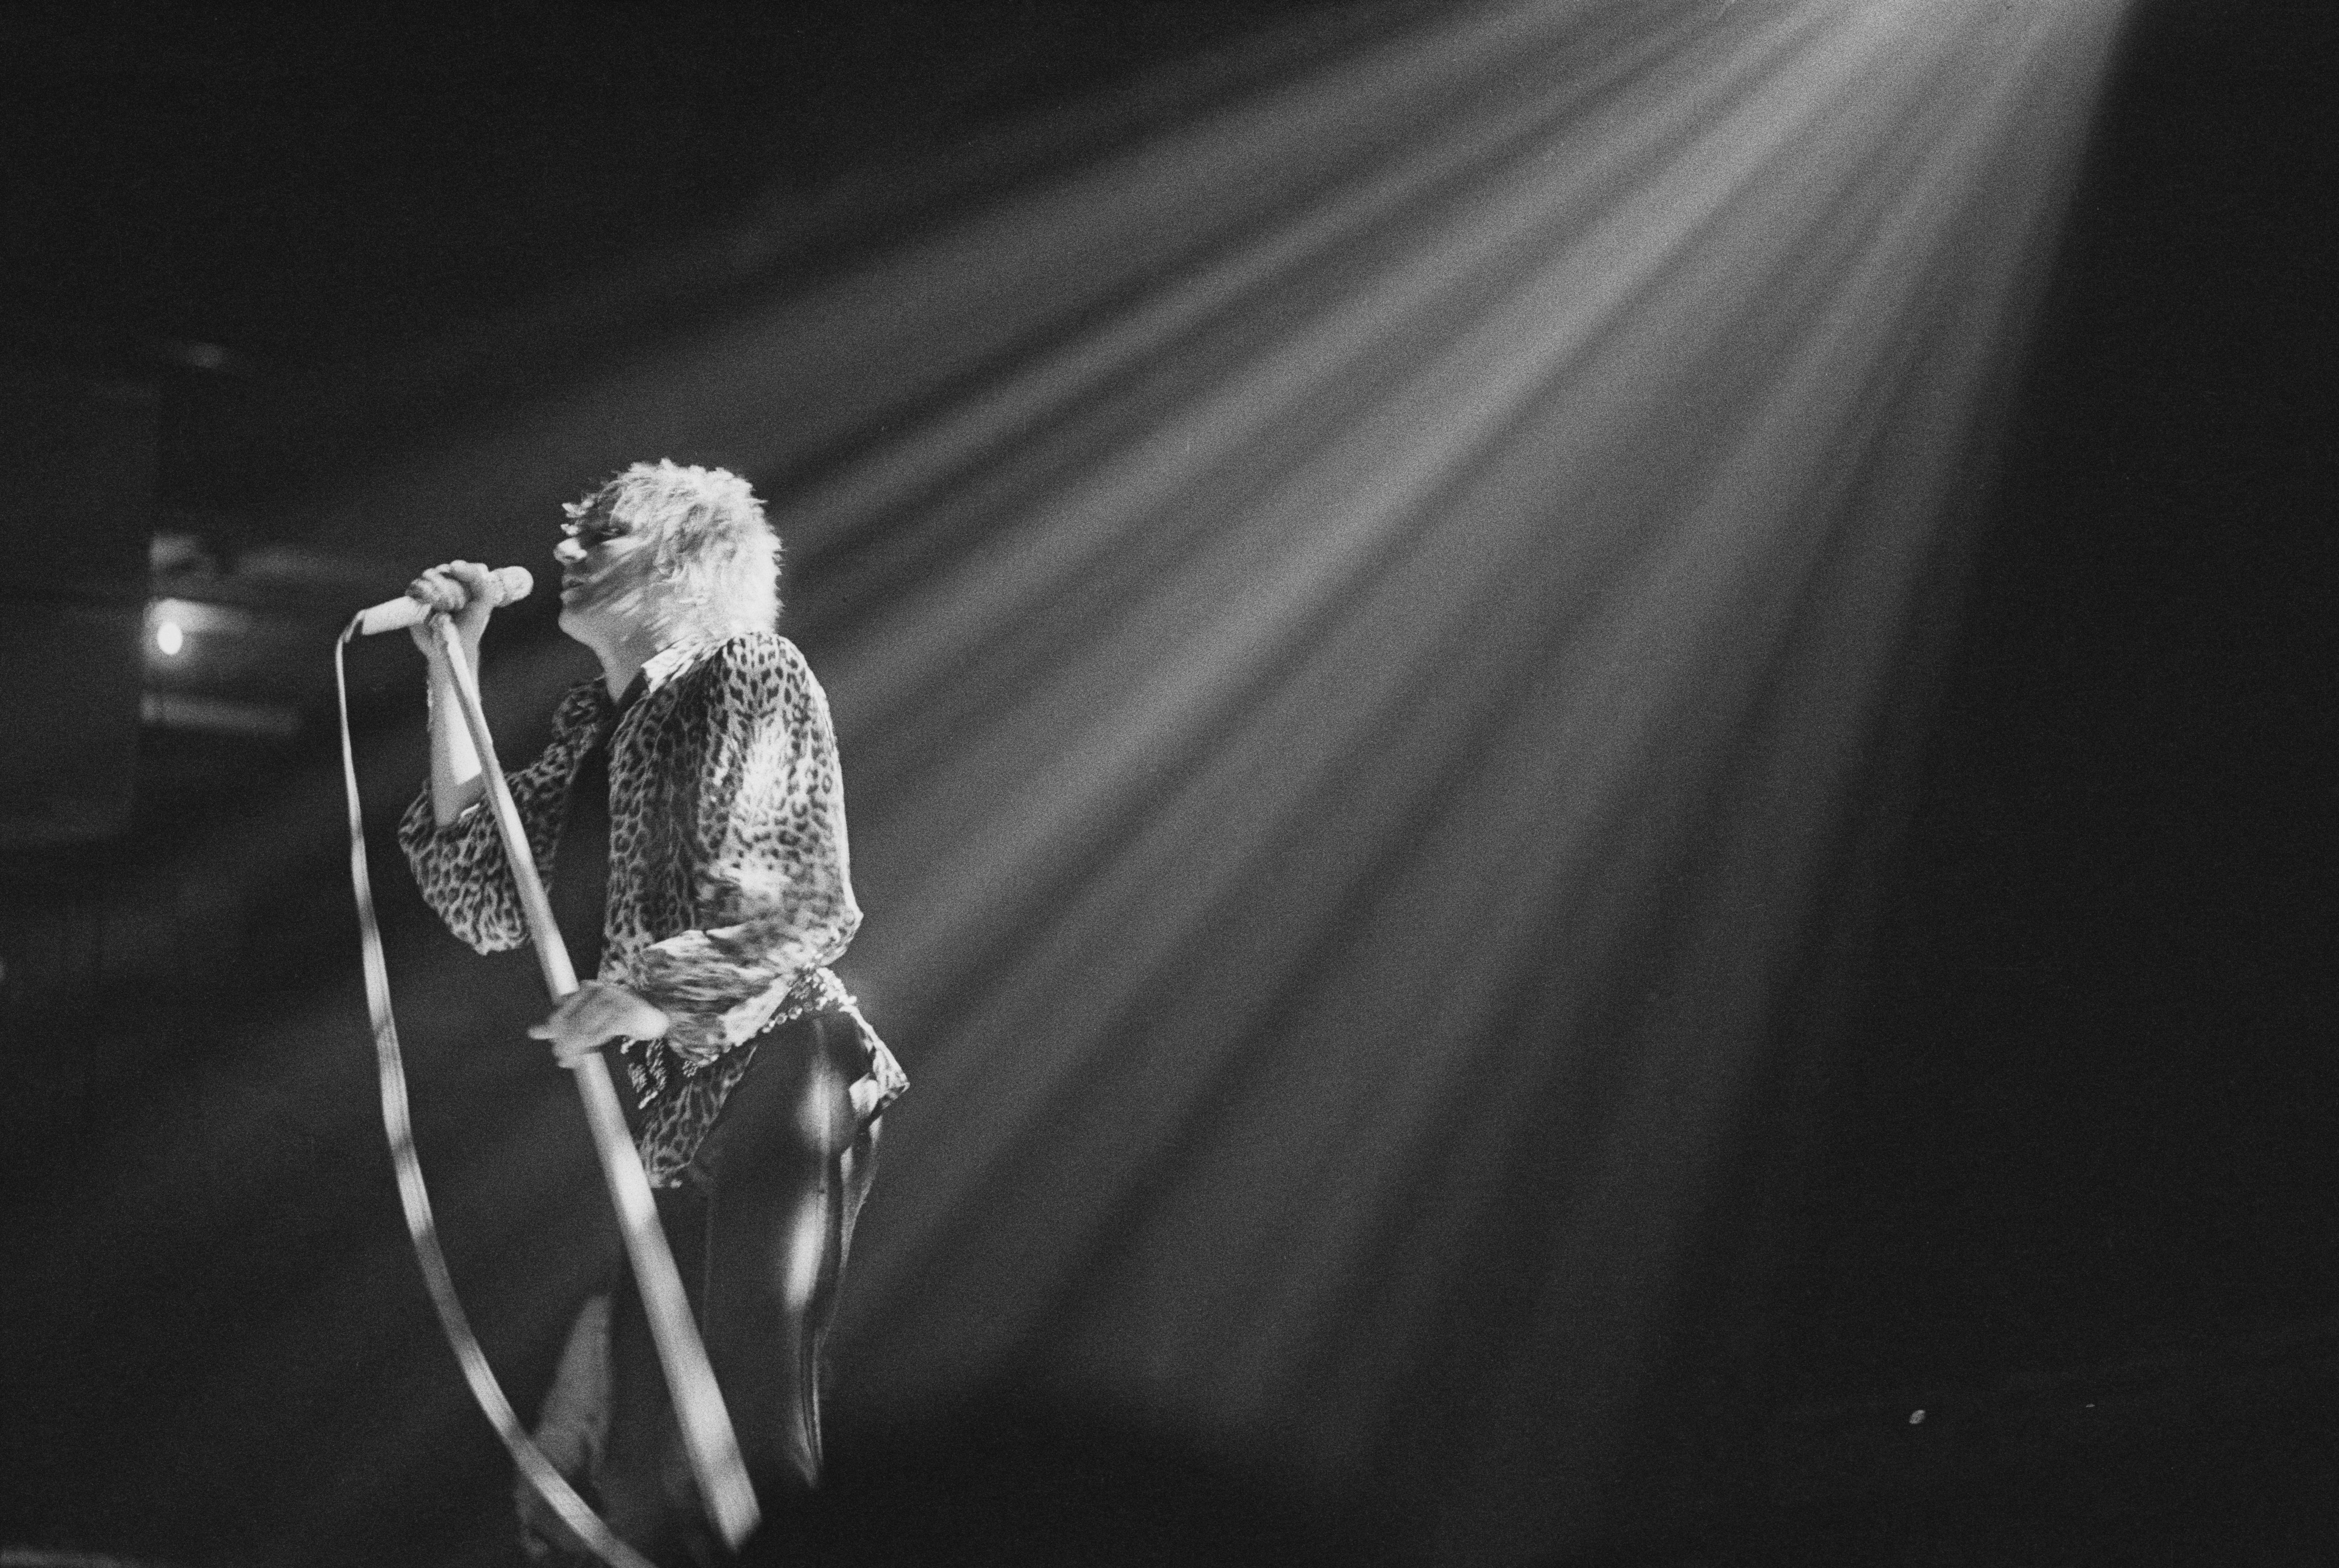 British rock singer and songwriter Rod Stewart performing at the Olympia,  London, UK, 22nd December 1978. (Photo by Evening Standard/Hulton Archive/Getty Images)